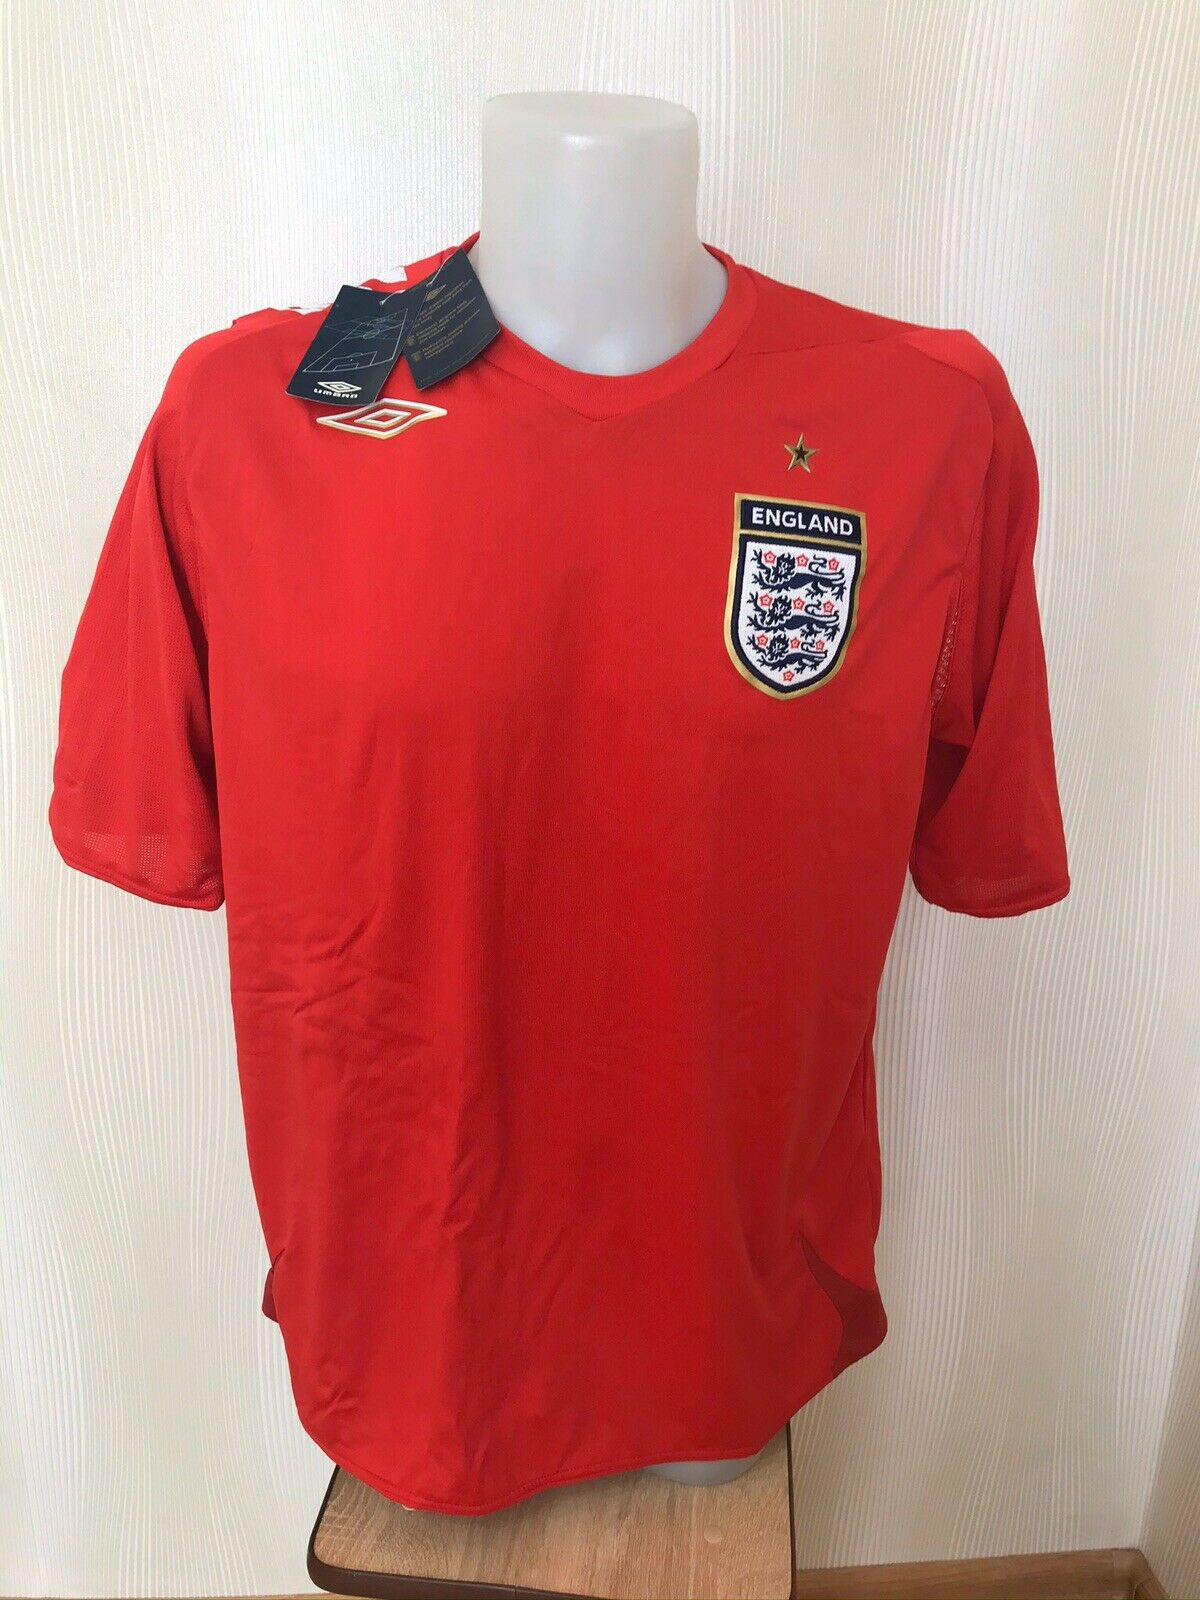 England national team 2006/2007/2008 Home Size XL jersey Umbro